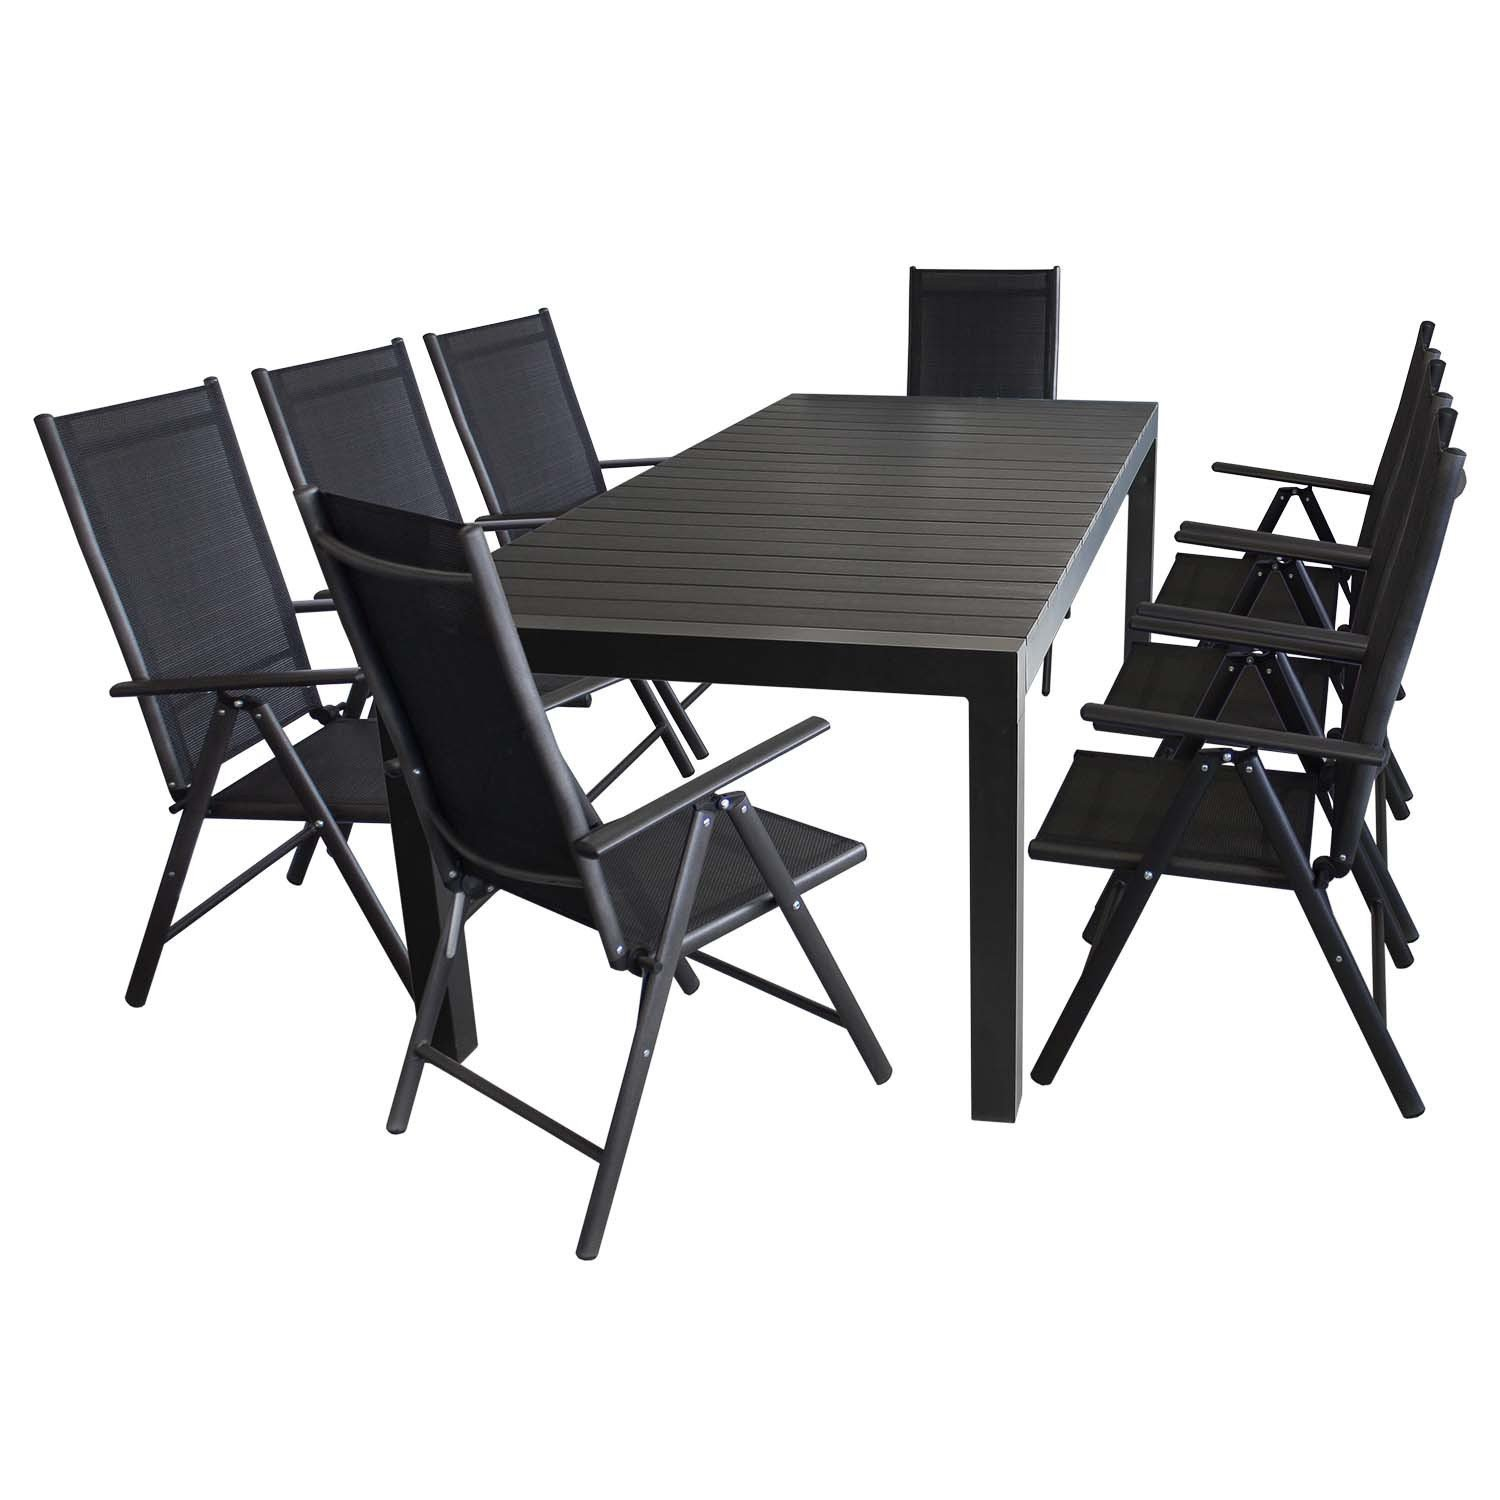 9tlg gartenm bel set aluminium polywood ausziehtisch 224 284 344x100cm f r bis 12 personen. Black Bedroom Furniture Sets. Home Design Ideas